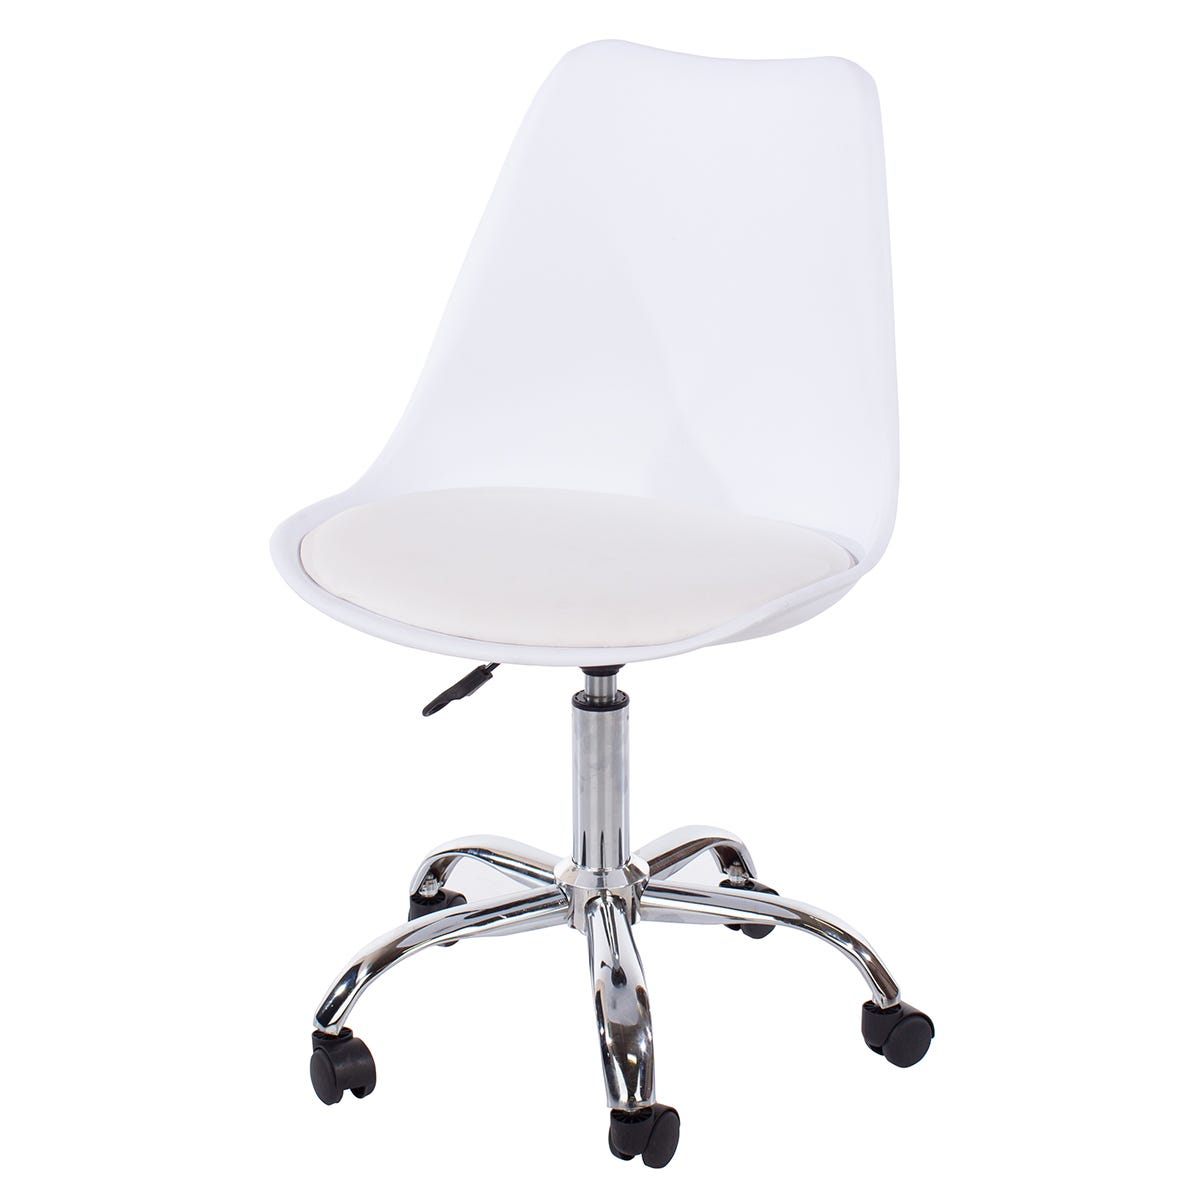 Core Products Elis Home Office Chair - White